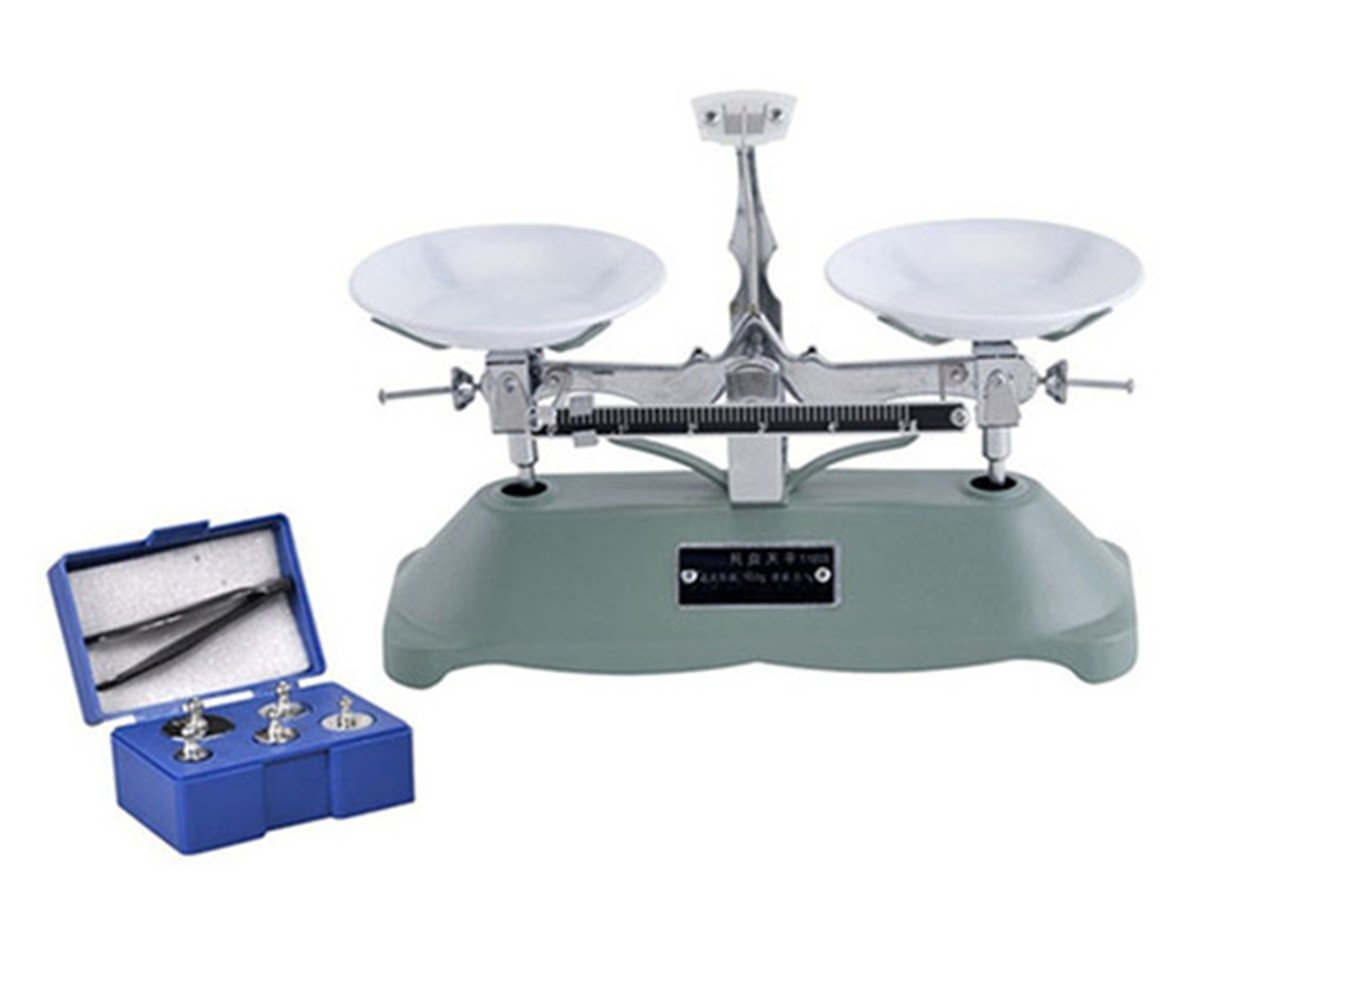 CGOLDENWALL The 100g/0.1g Counter Balance Scale Mechanical Table Balance Scale Single Beam with Weight School Teaching Tool Lab Equipment